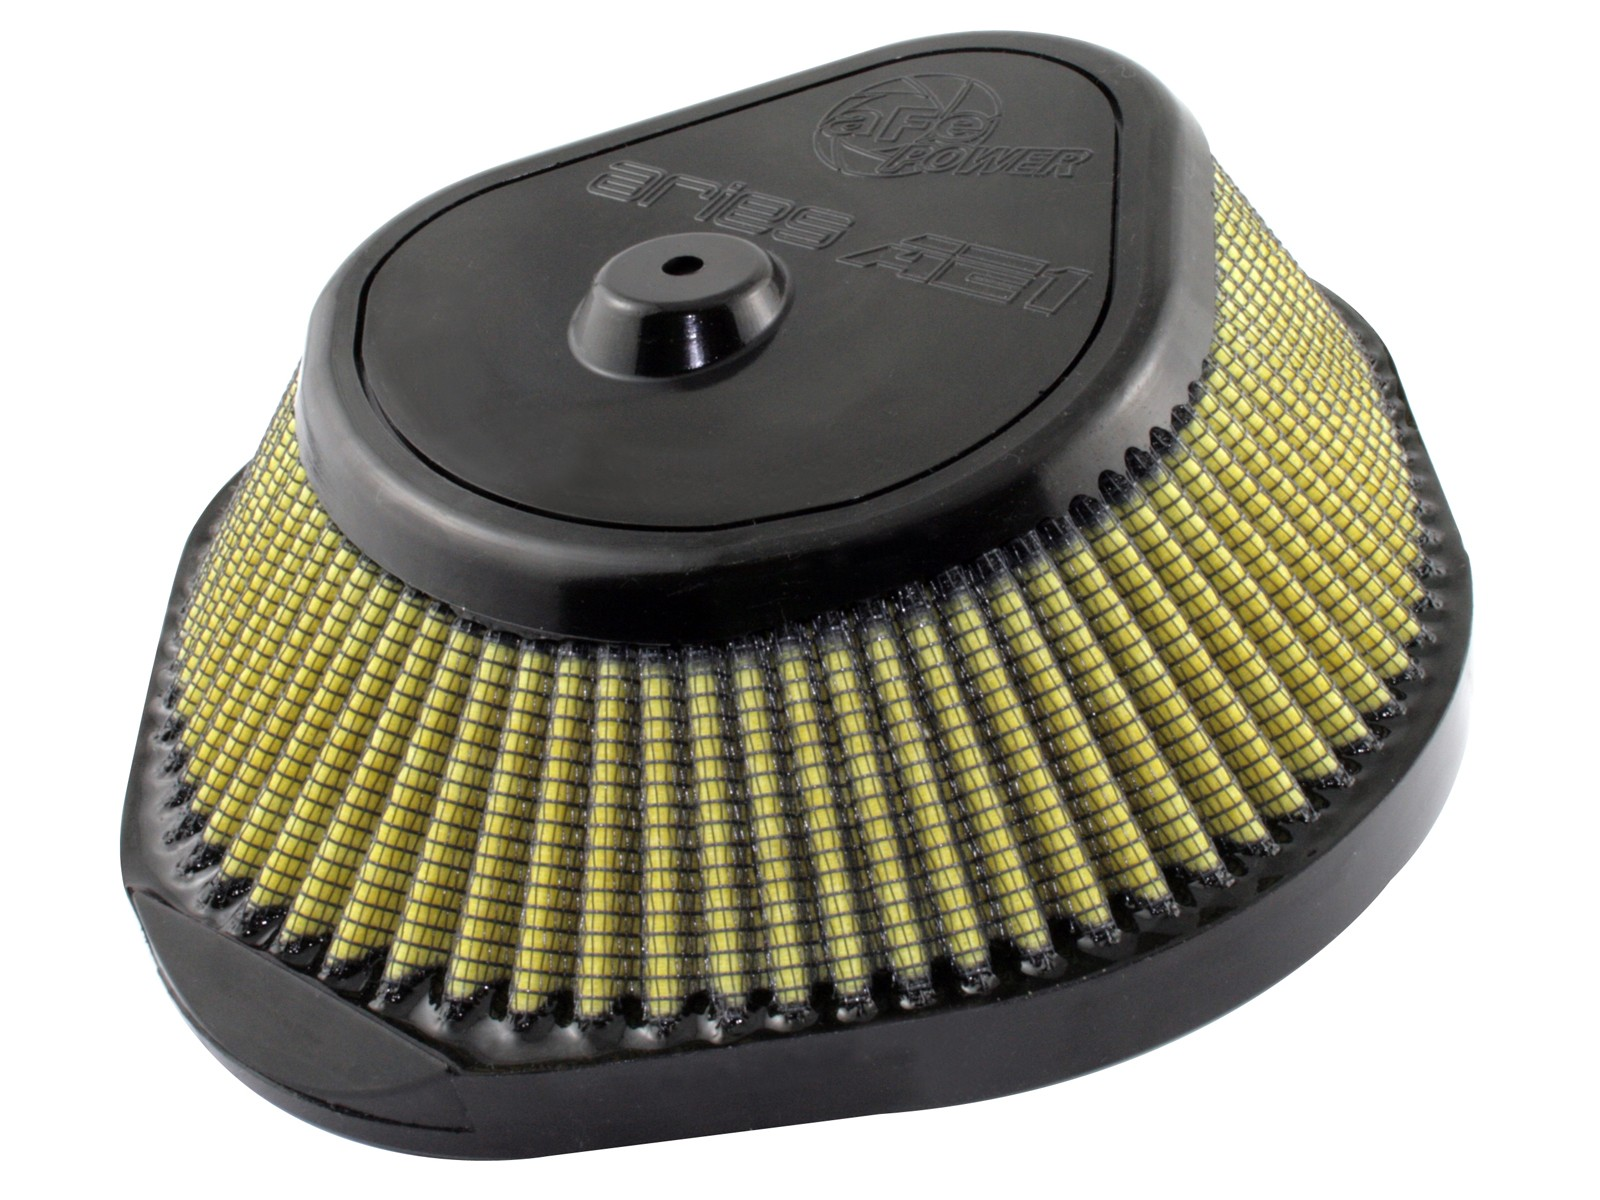 aFe POWER 87-10056 Aries Powersports Pro GUARD7 Air Filter